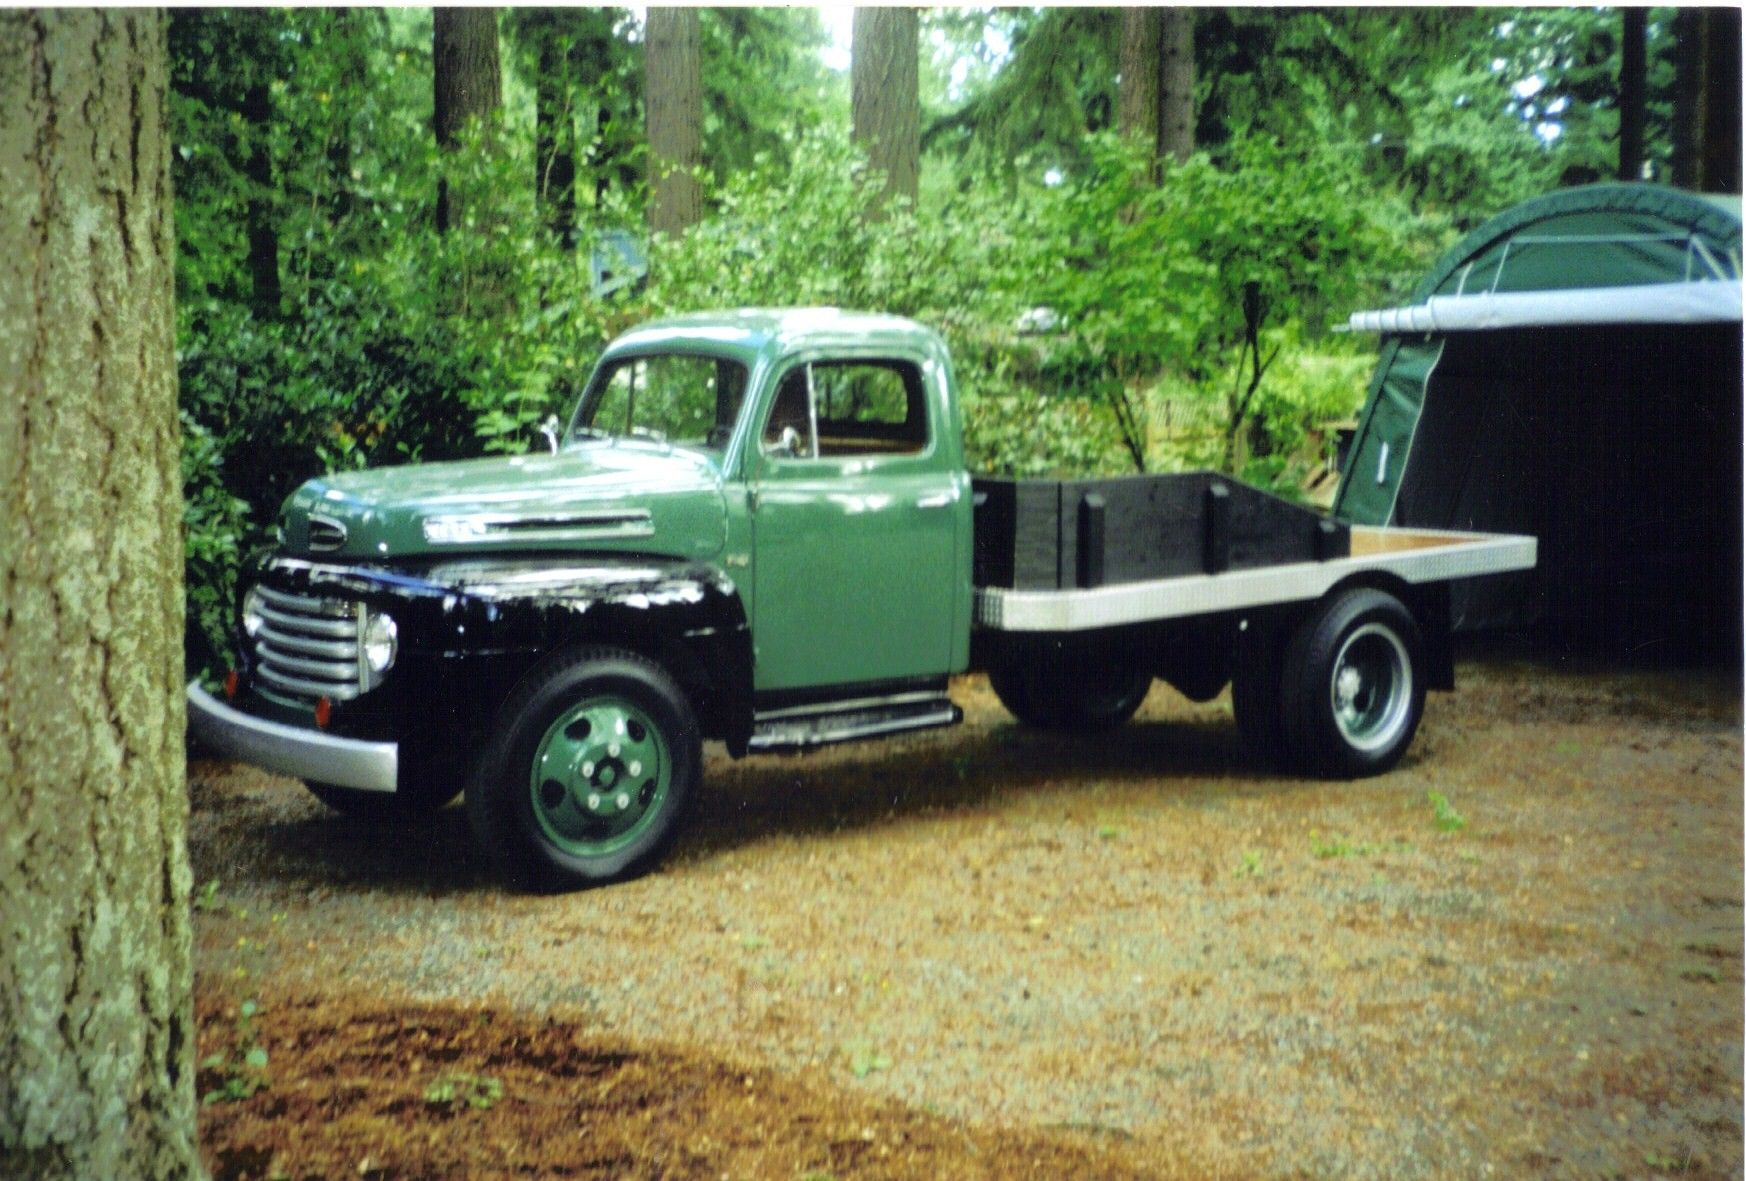 Ford Pickup | 1950 Ford F3 - SAINT MARKS 32355 - 0 | MISC ...